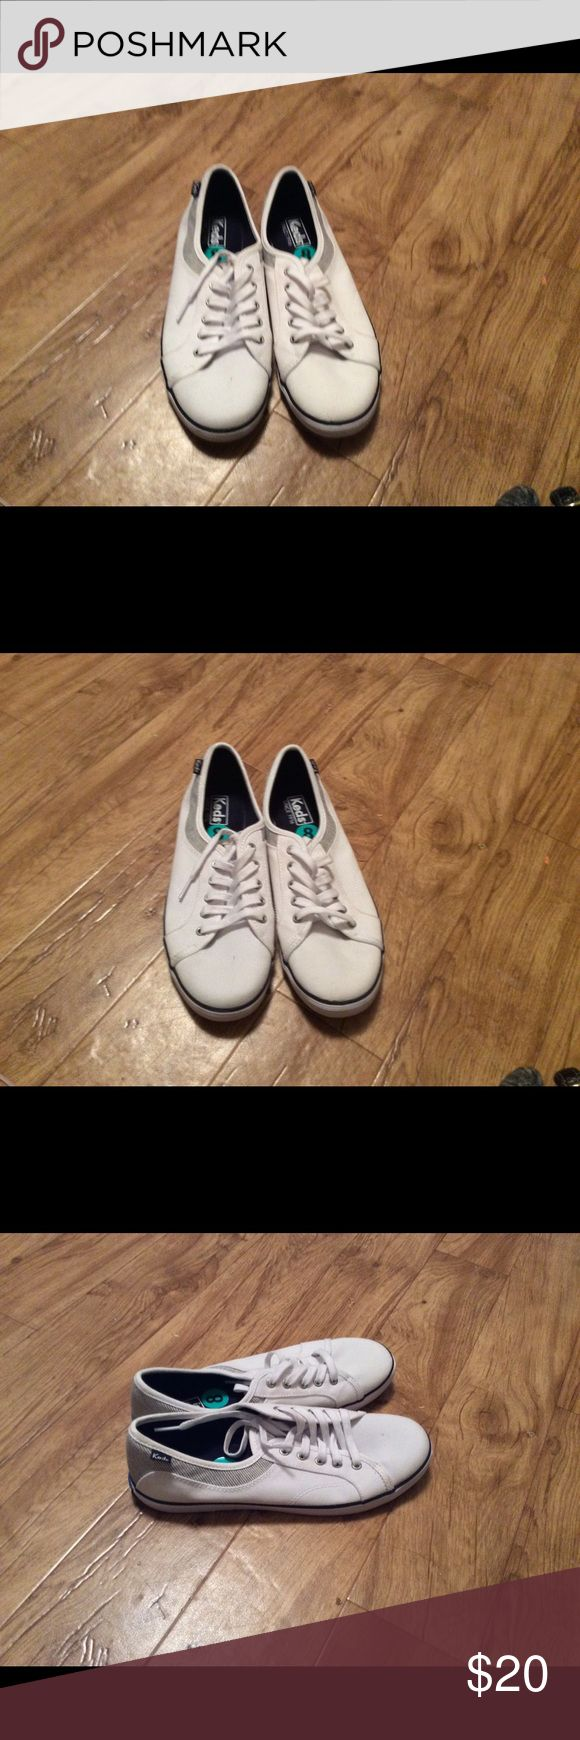 Tennis shoes White and blue Keds tennis shoes never worn Keds Shoes Sneakers